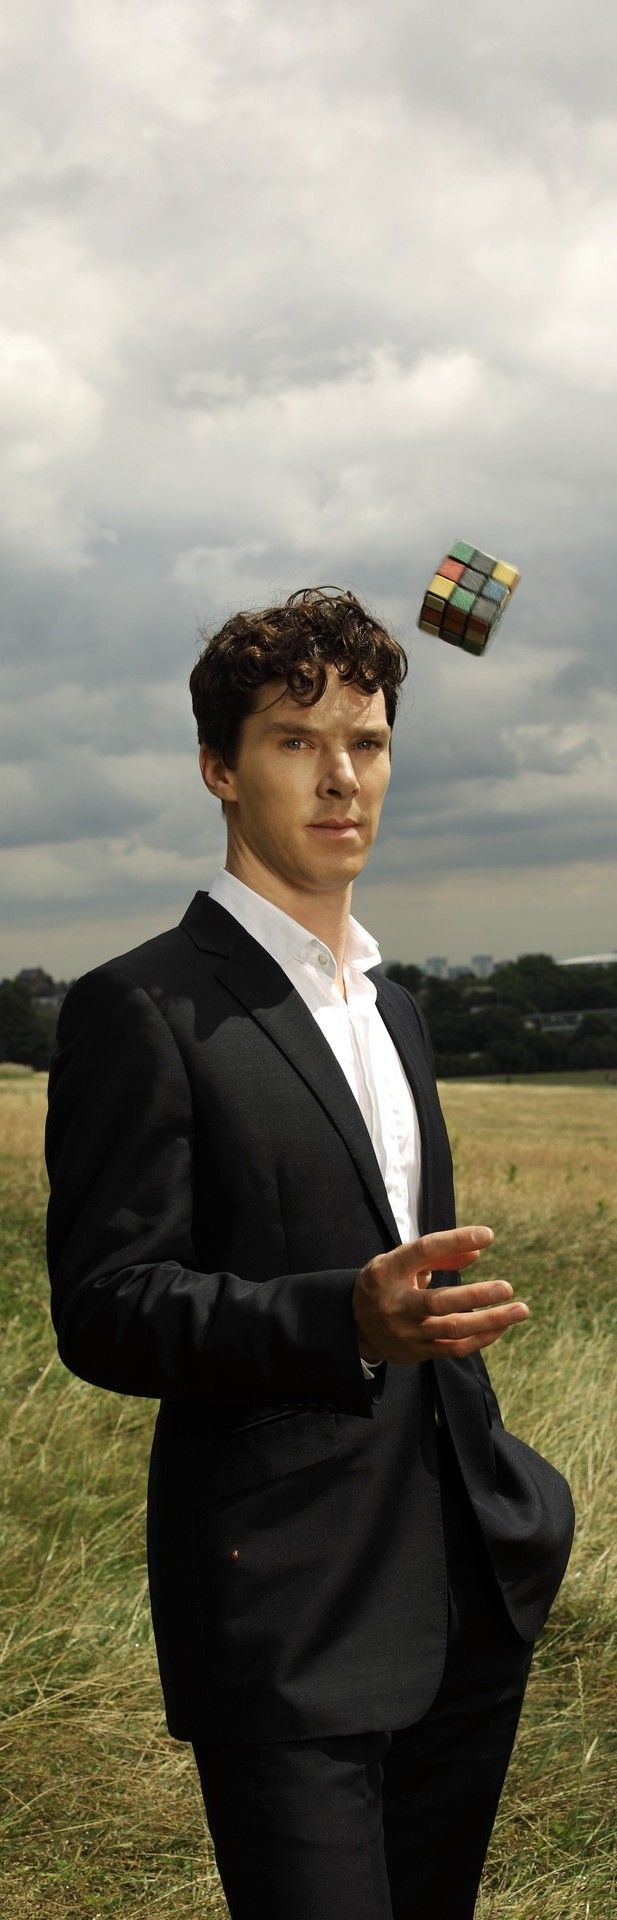 Benedict Cumberbatch telekenesis: because on the 40th birthday of the Rubik's cube, solving it is not enough.